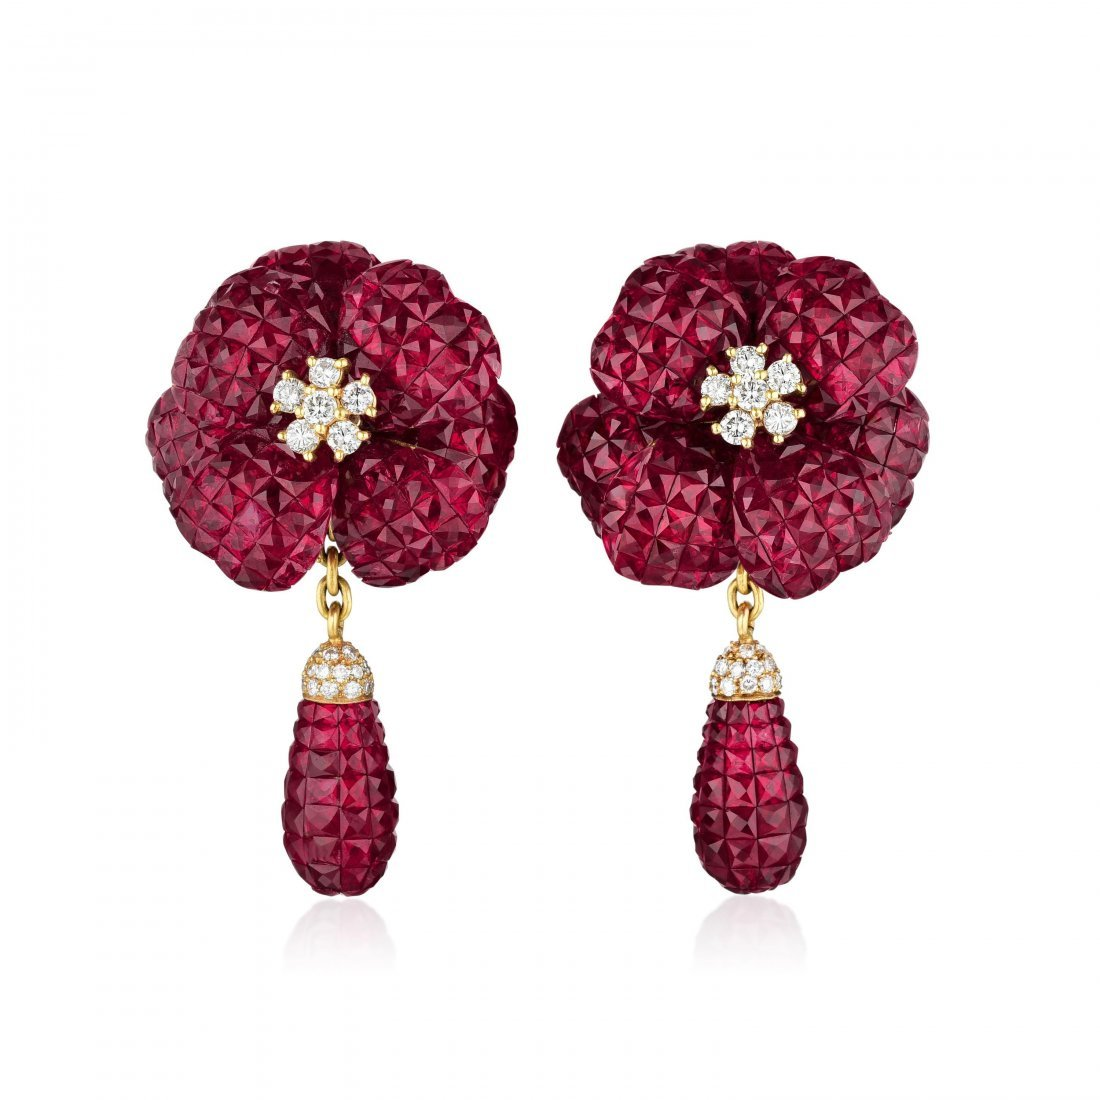 A Pair of Invisibly-Set Ruby Earrings - 2